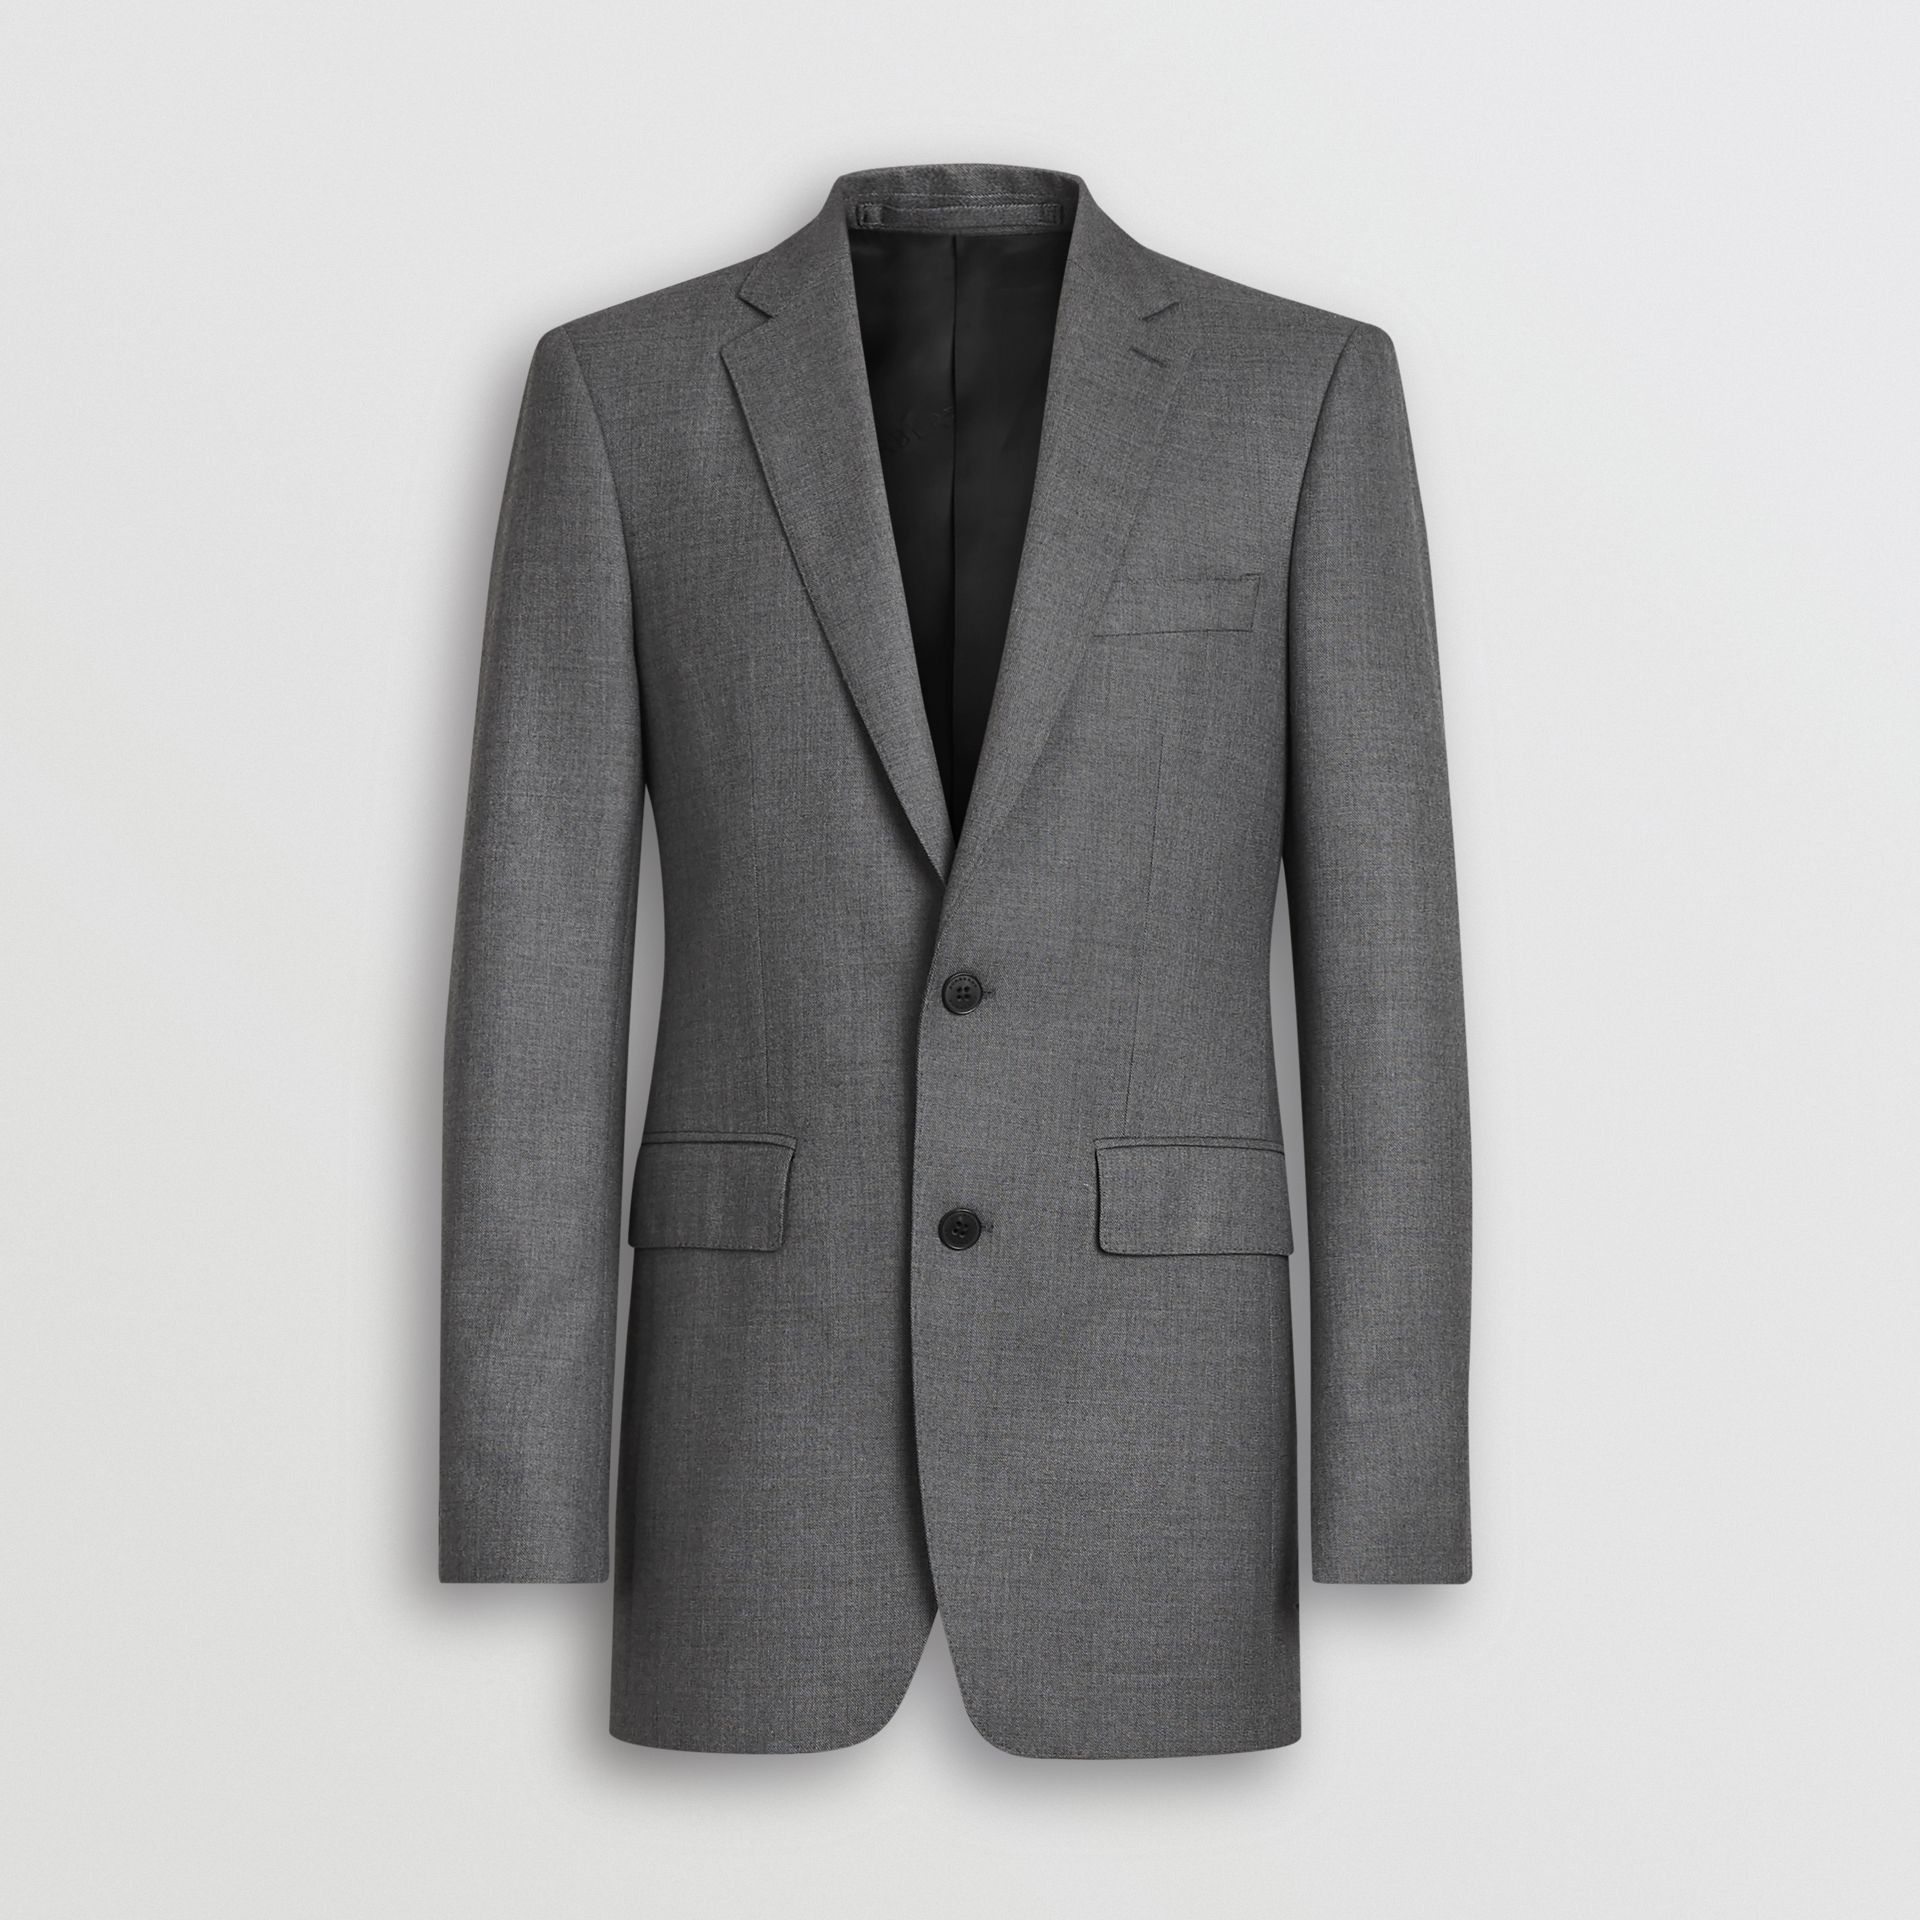 Classic Fit Sharkskin Wool Suit in Mid Grey Melange - Men | Burberry Canada - gallery image 3